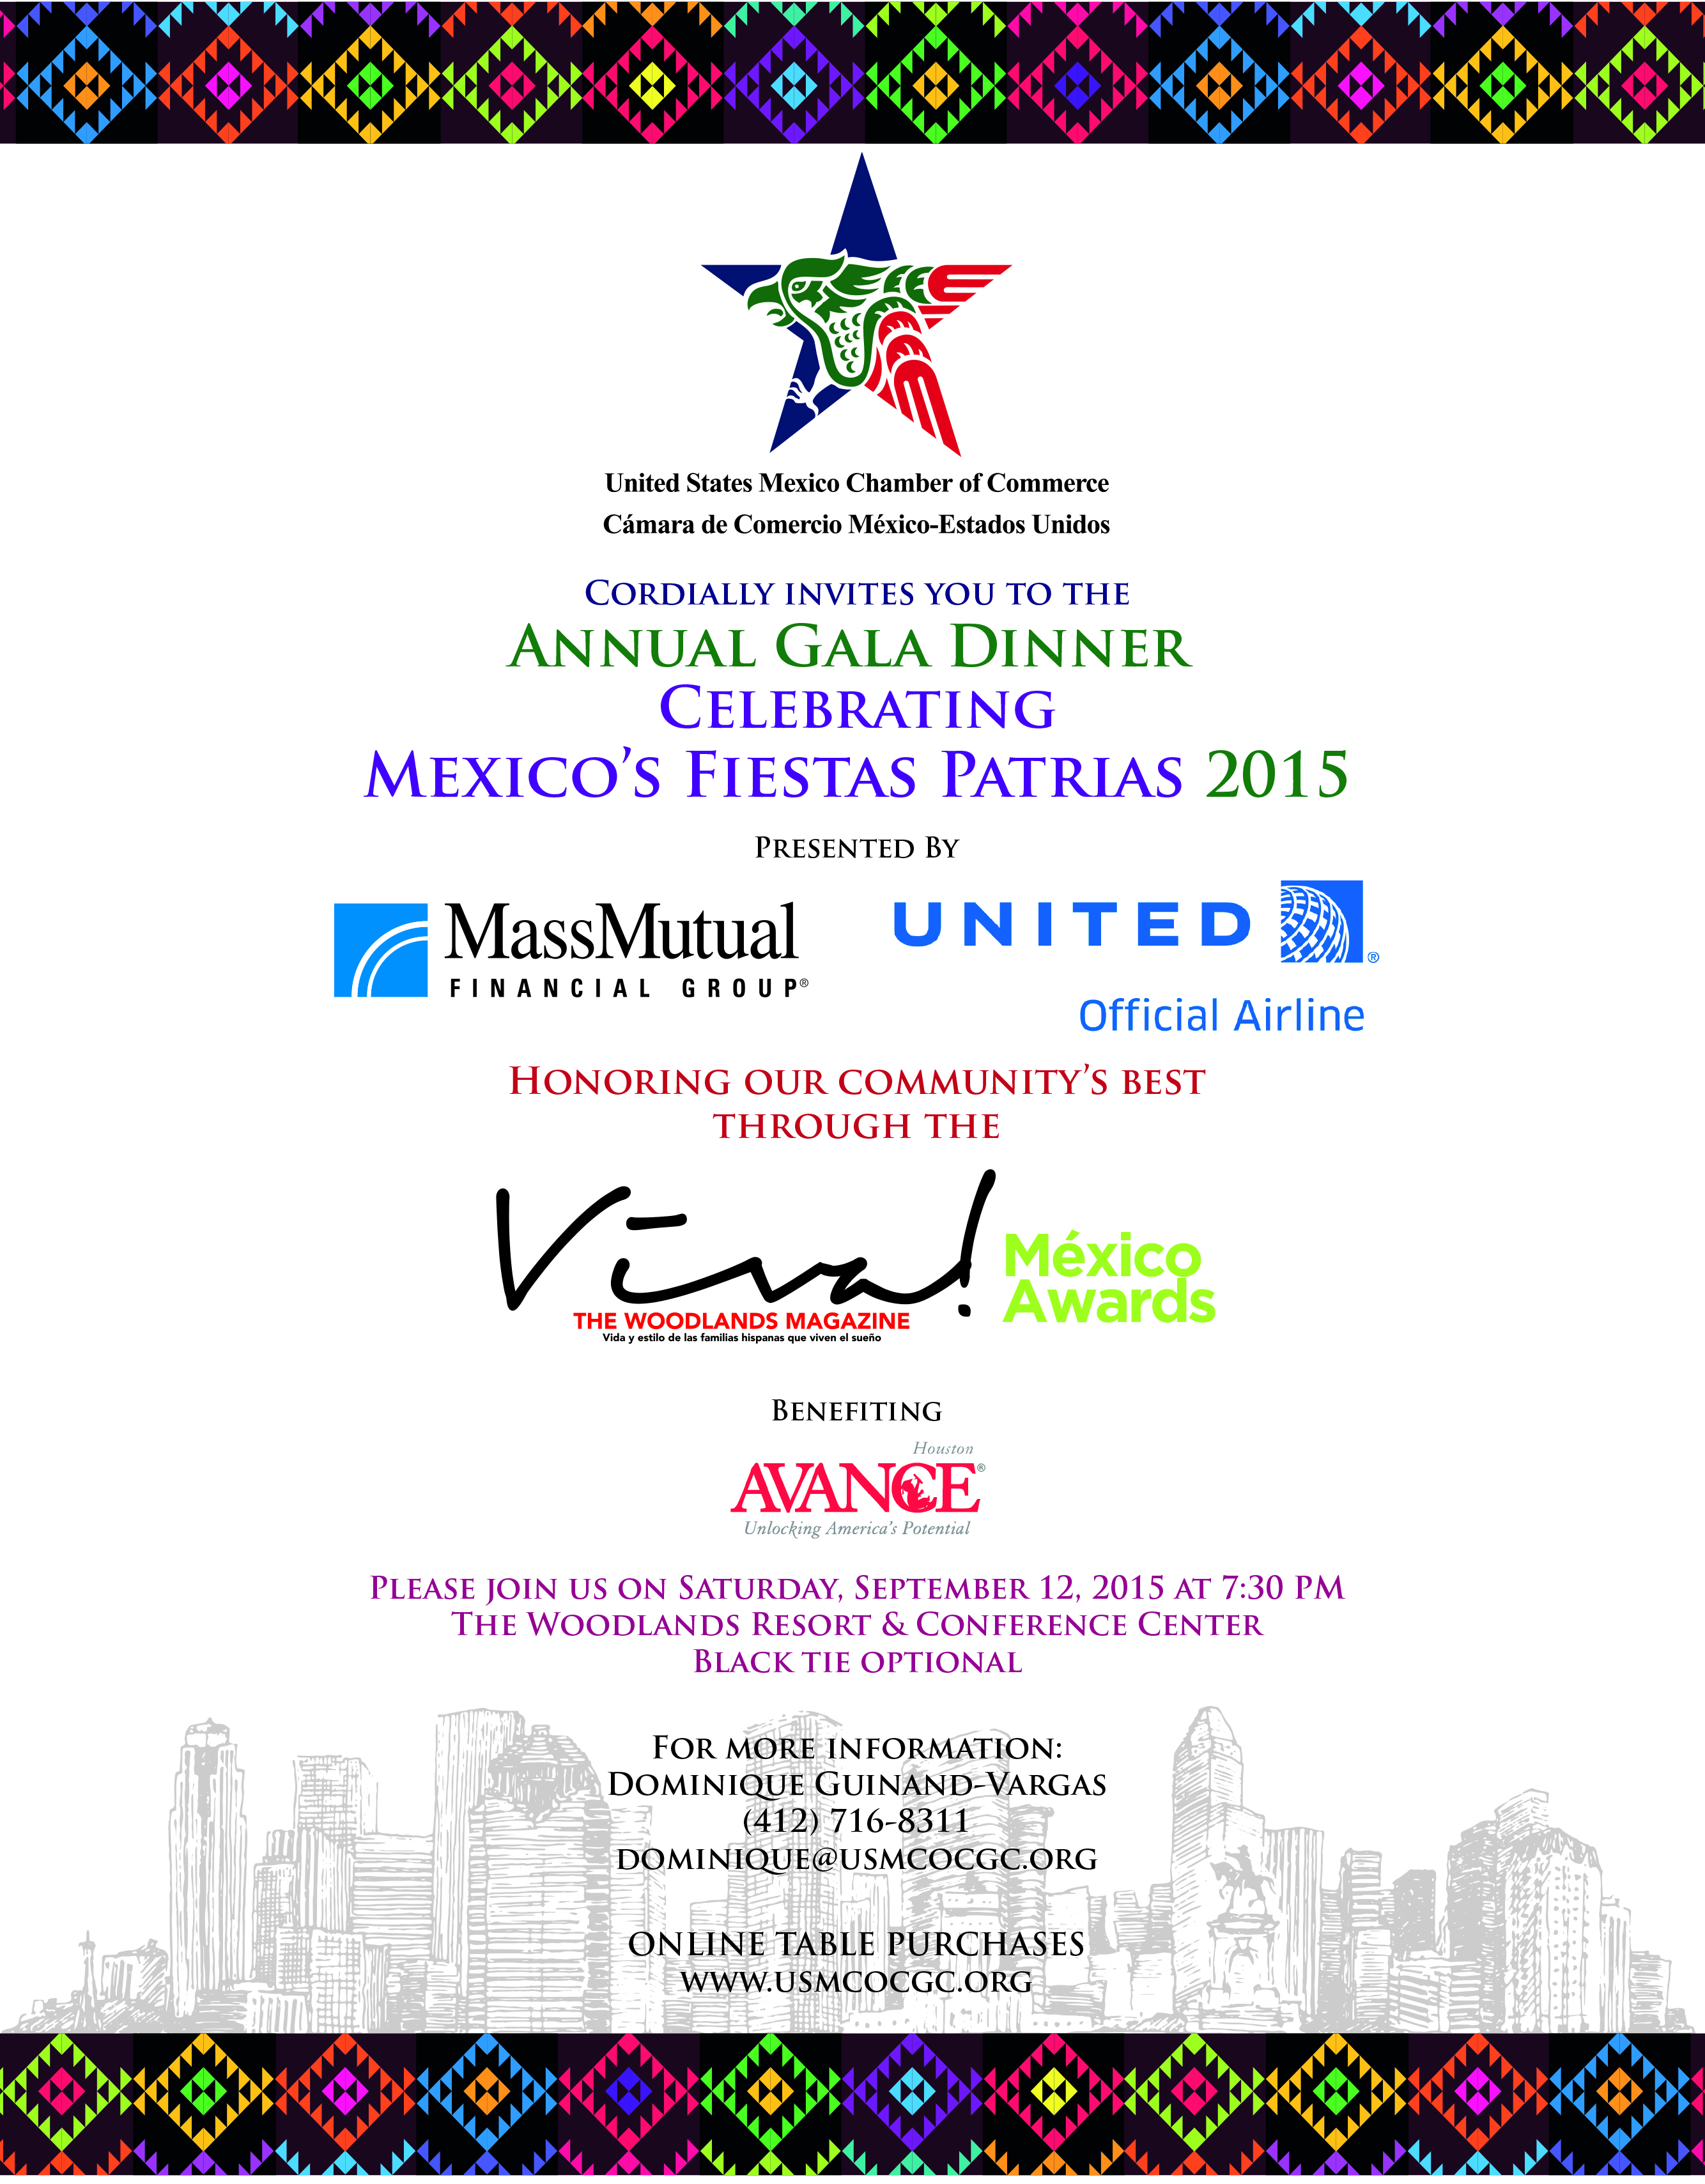 US Mexico Chamber of Commerce 2nd Annual Fiestas Patrias Gala on Saturday, September 12, 2015